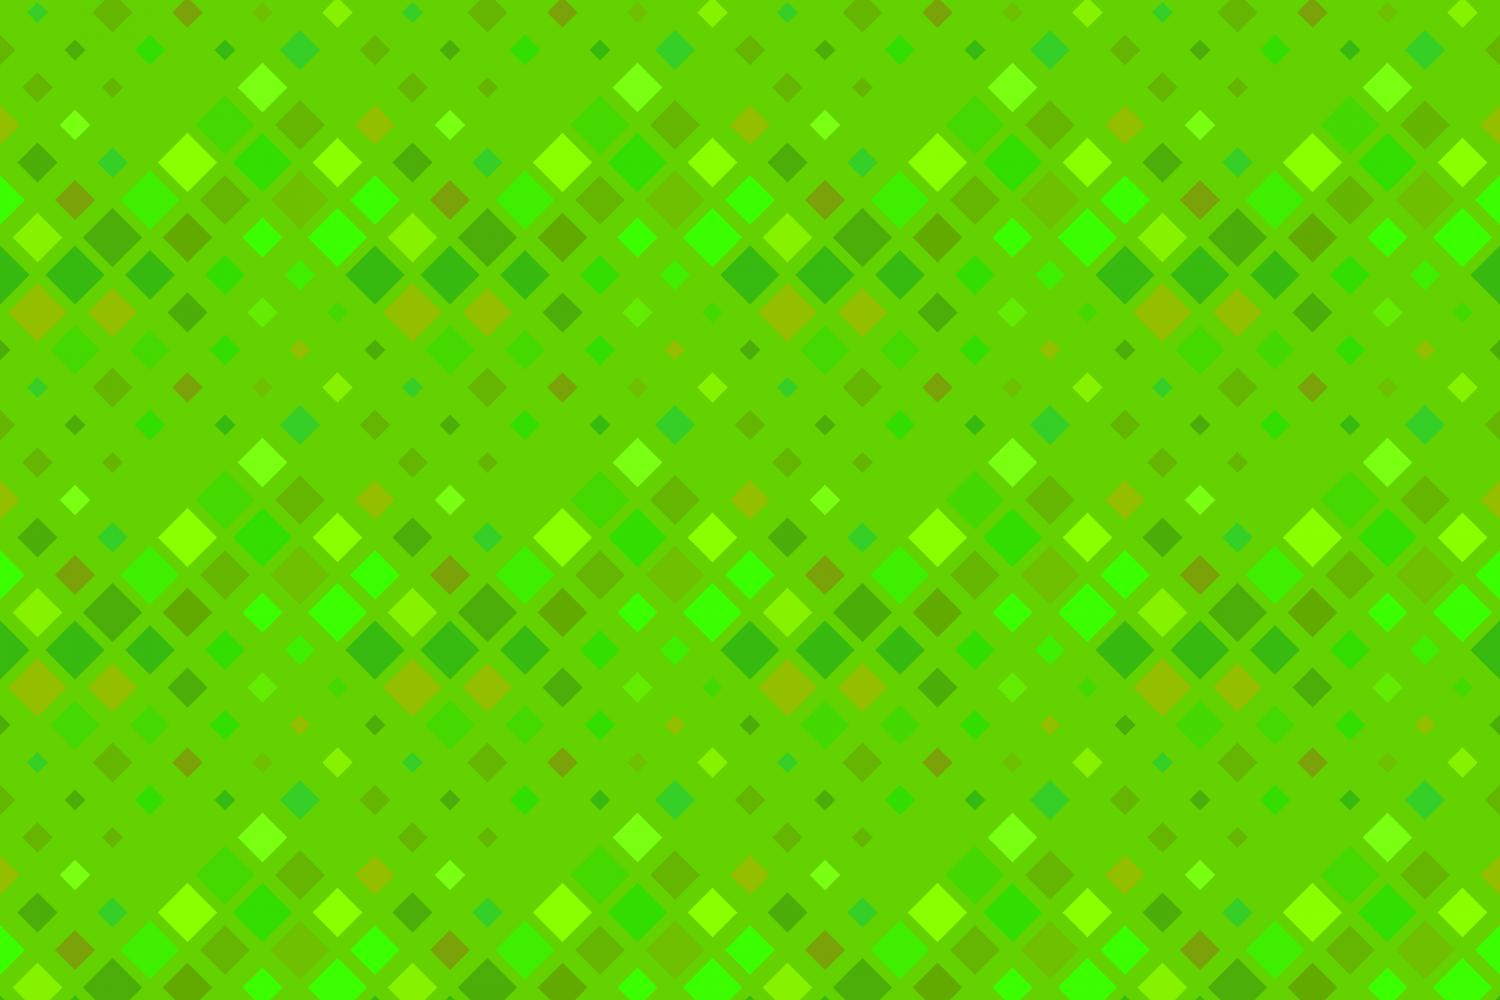 Download Free Seamless Green Square Pattern Graphic By Davidzydd Creative for Cricut Explore, Silhouette and other cutting machines.